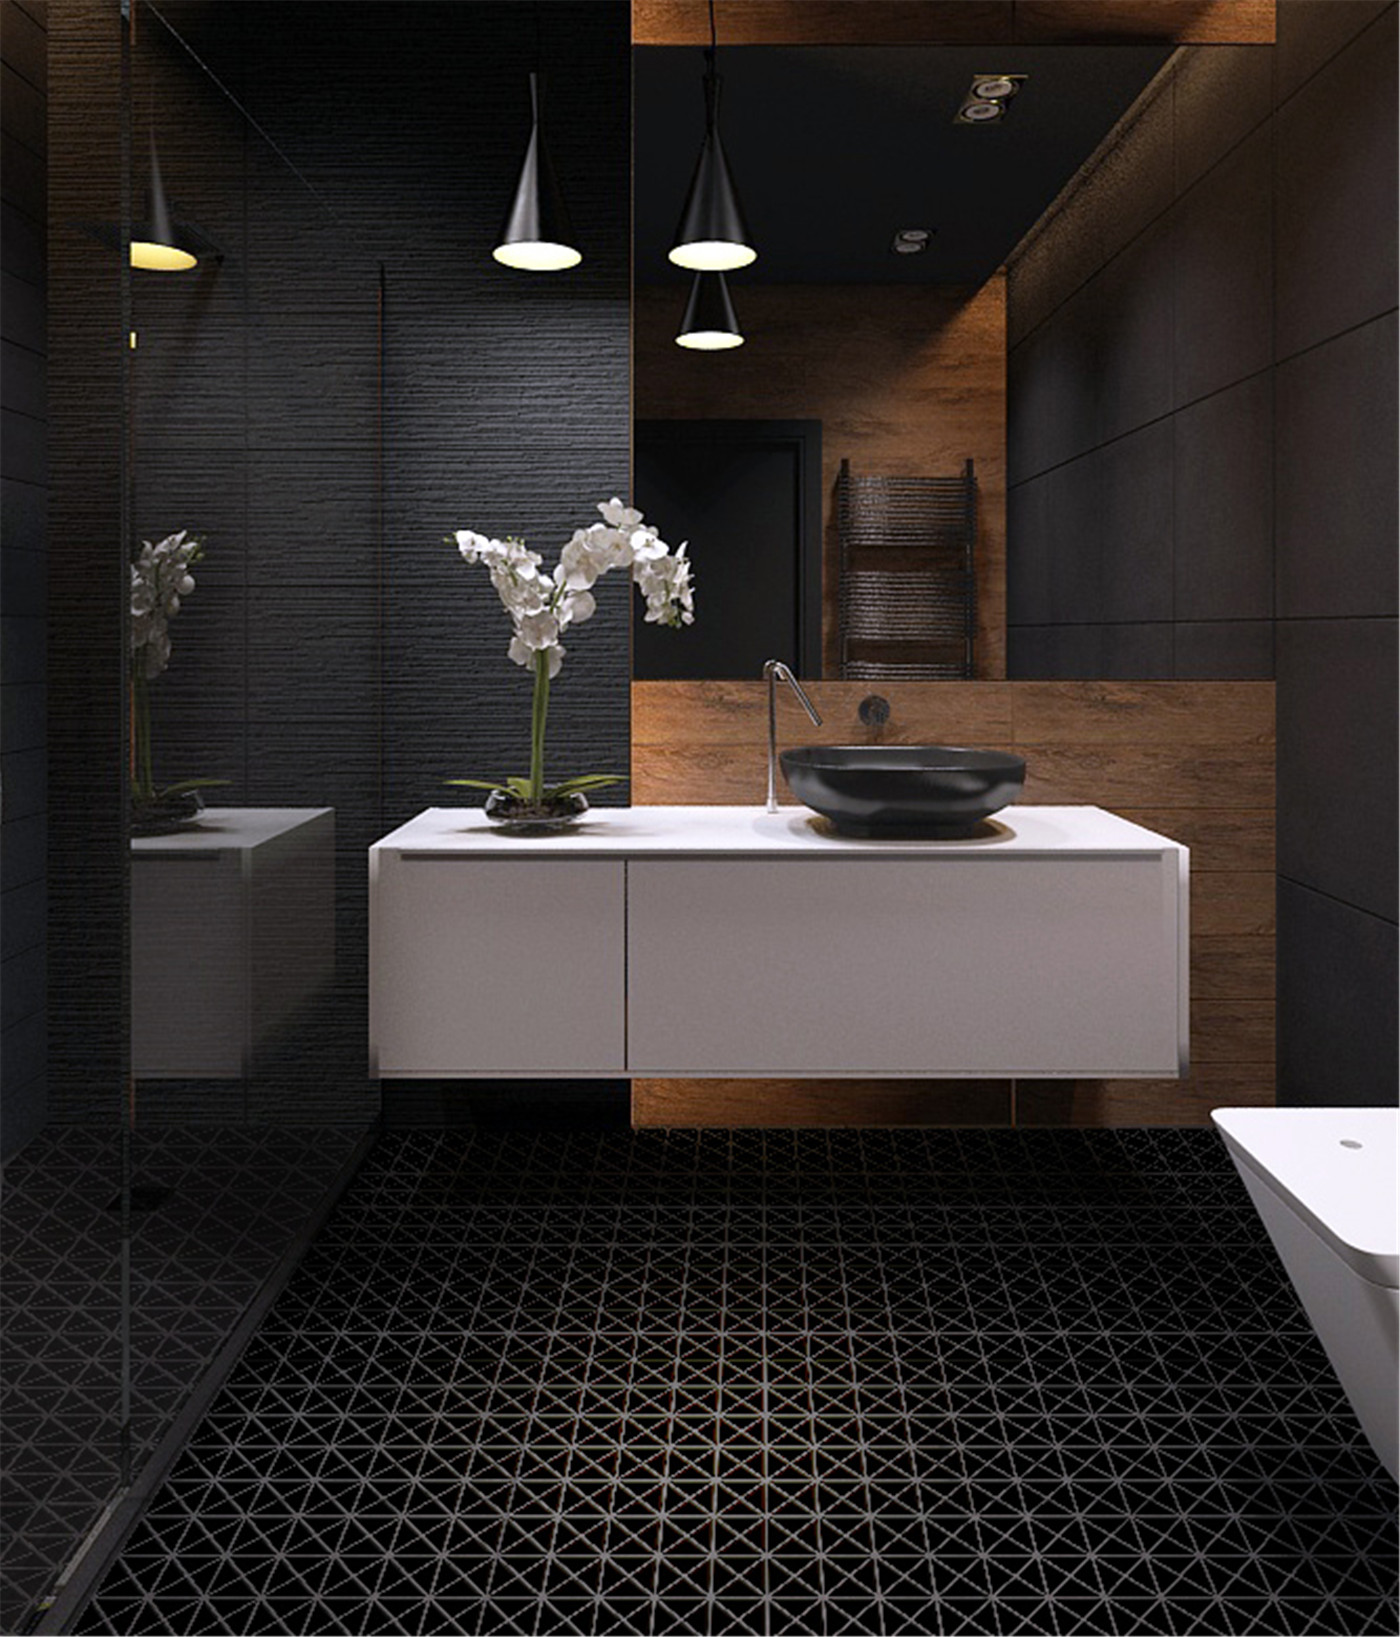 Tr2 Mb 8 Matte Pure Black Triangle Tile Porcelain Mosaic For Bathroom Flooring